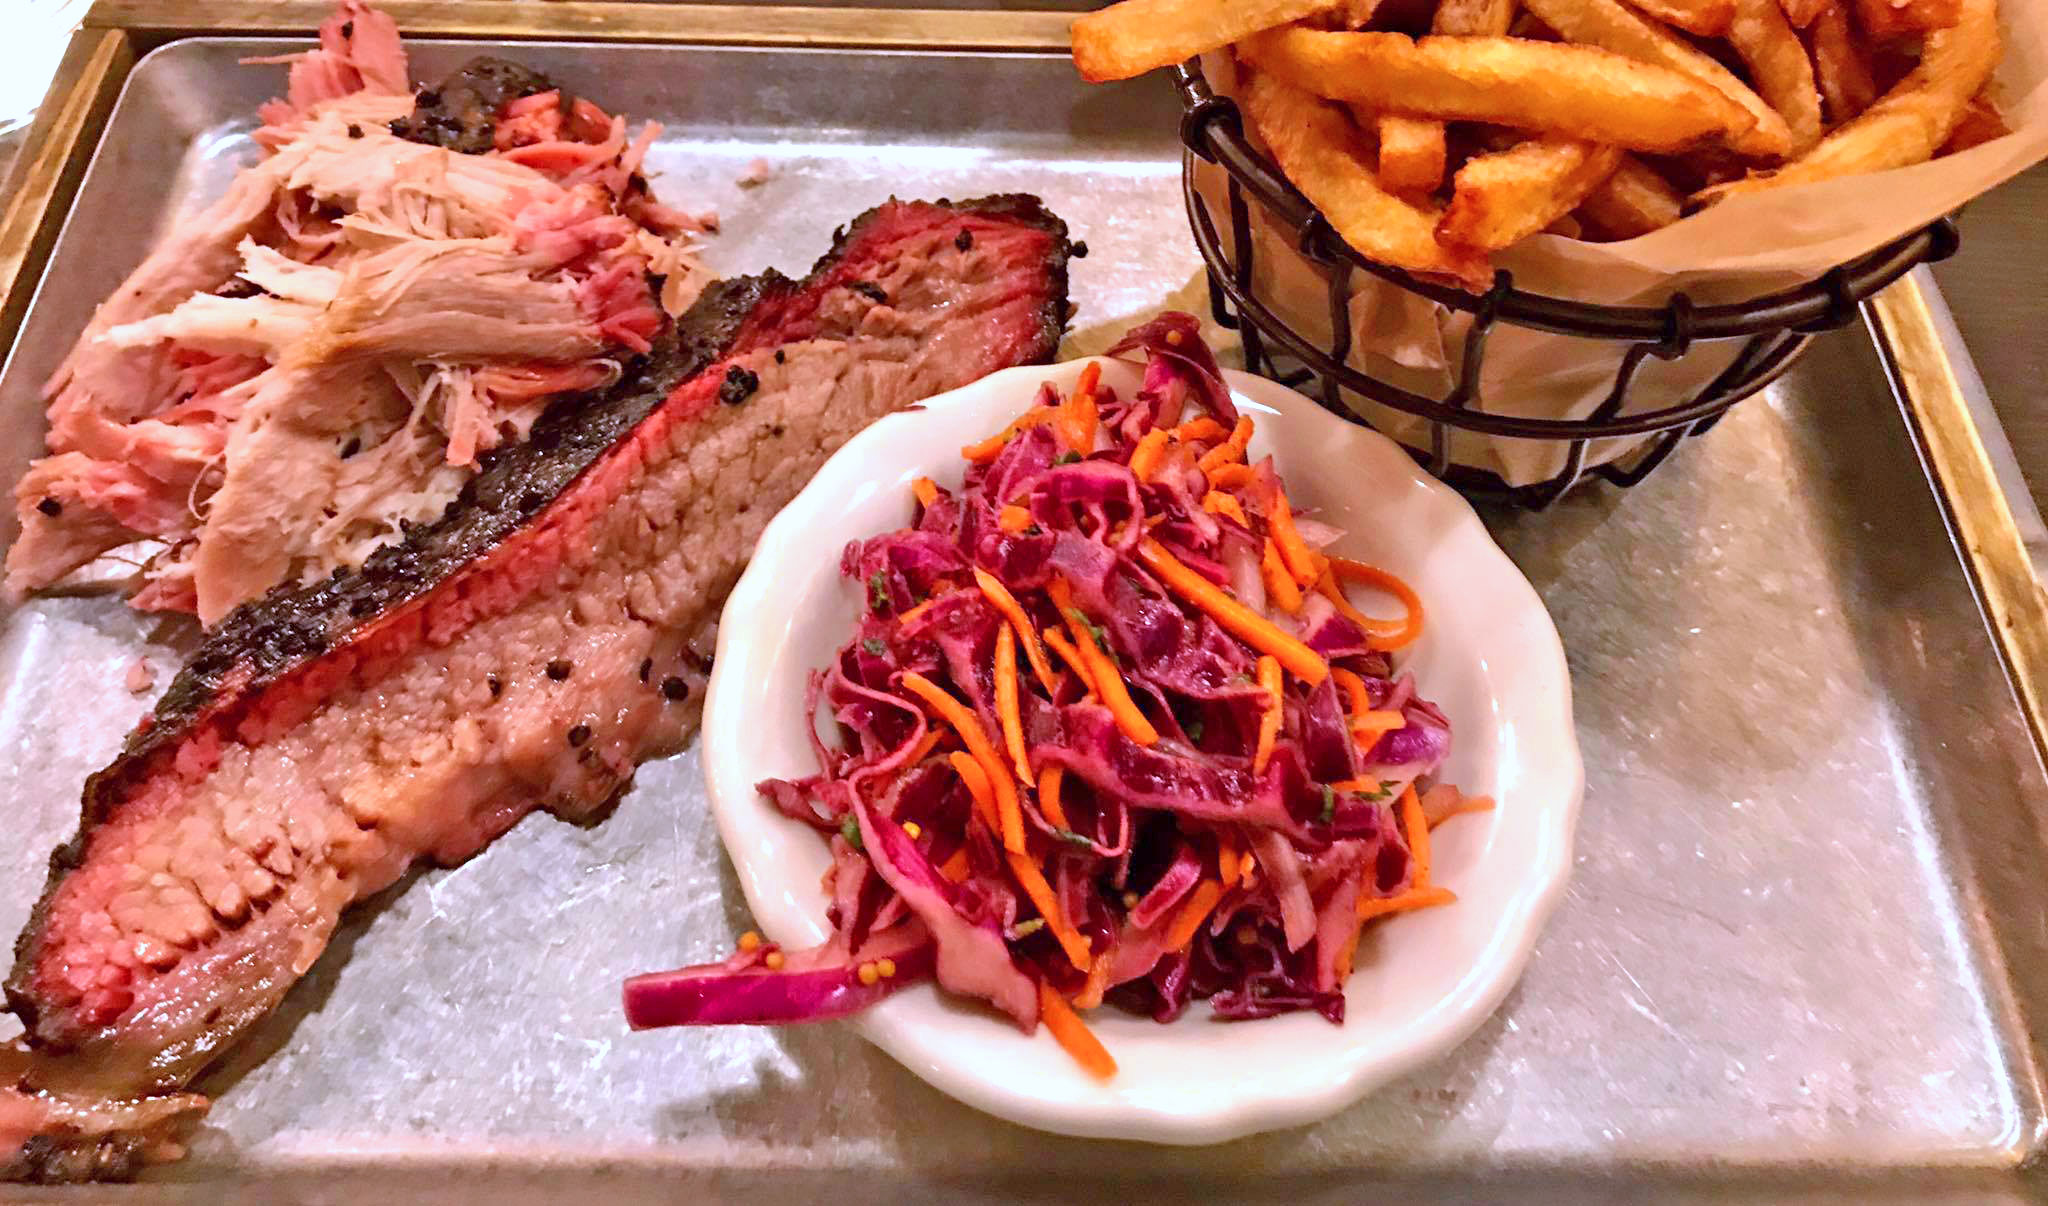 Sliced Brisket (Lori's favorite), with fries and Purple Slaw